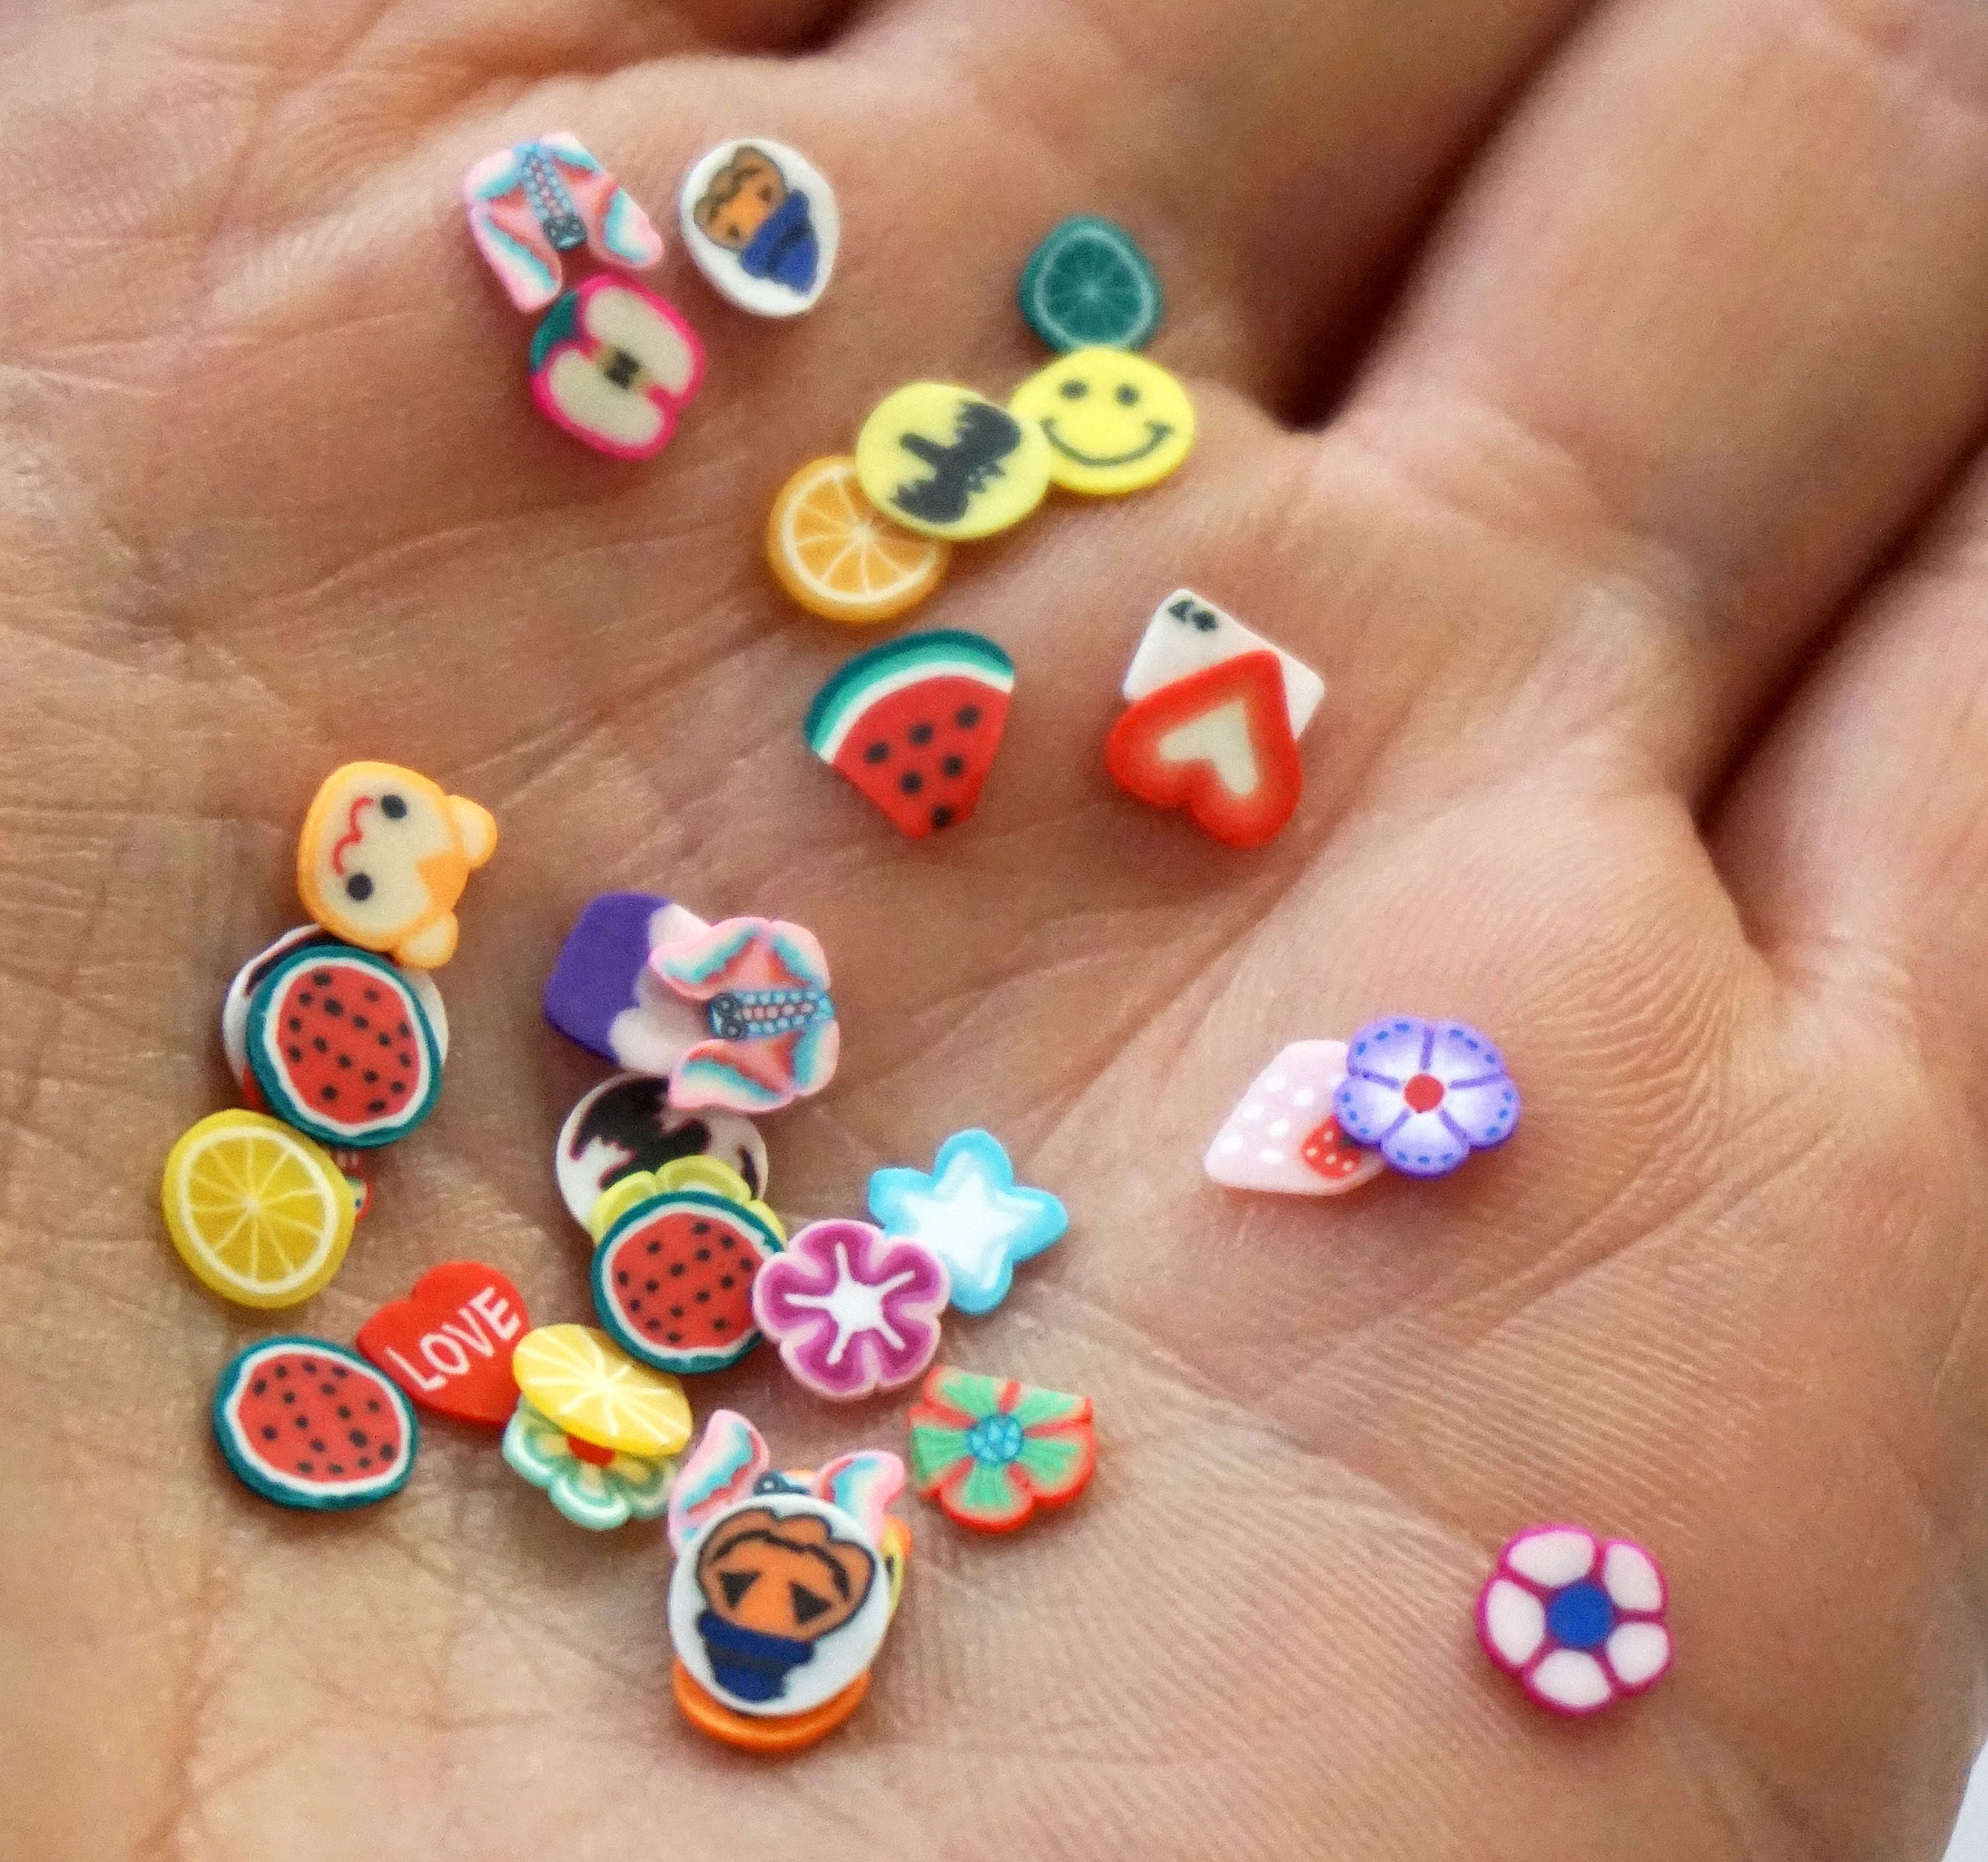 1000 PIECES 3D FRUITS Fimo Slice Polymer Clay Nail Art Decor Slime ...